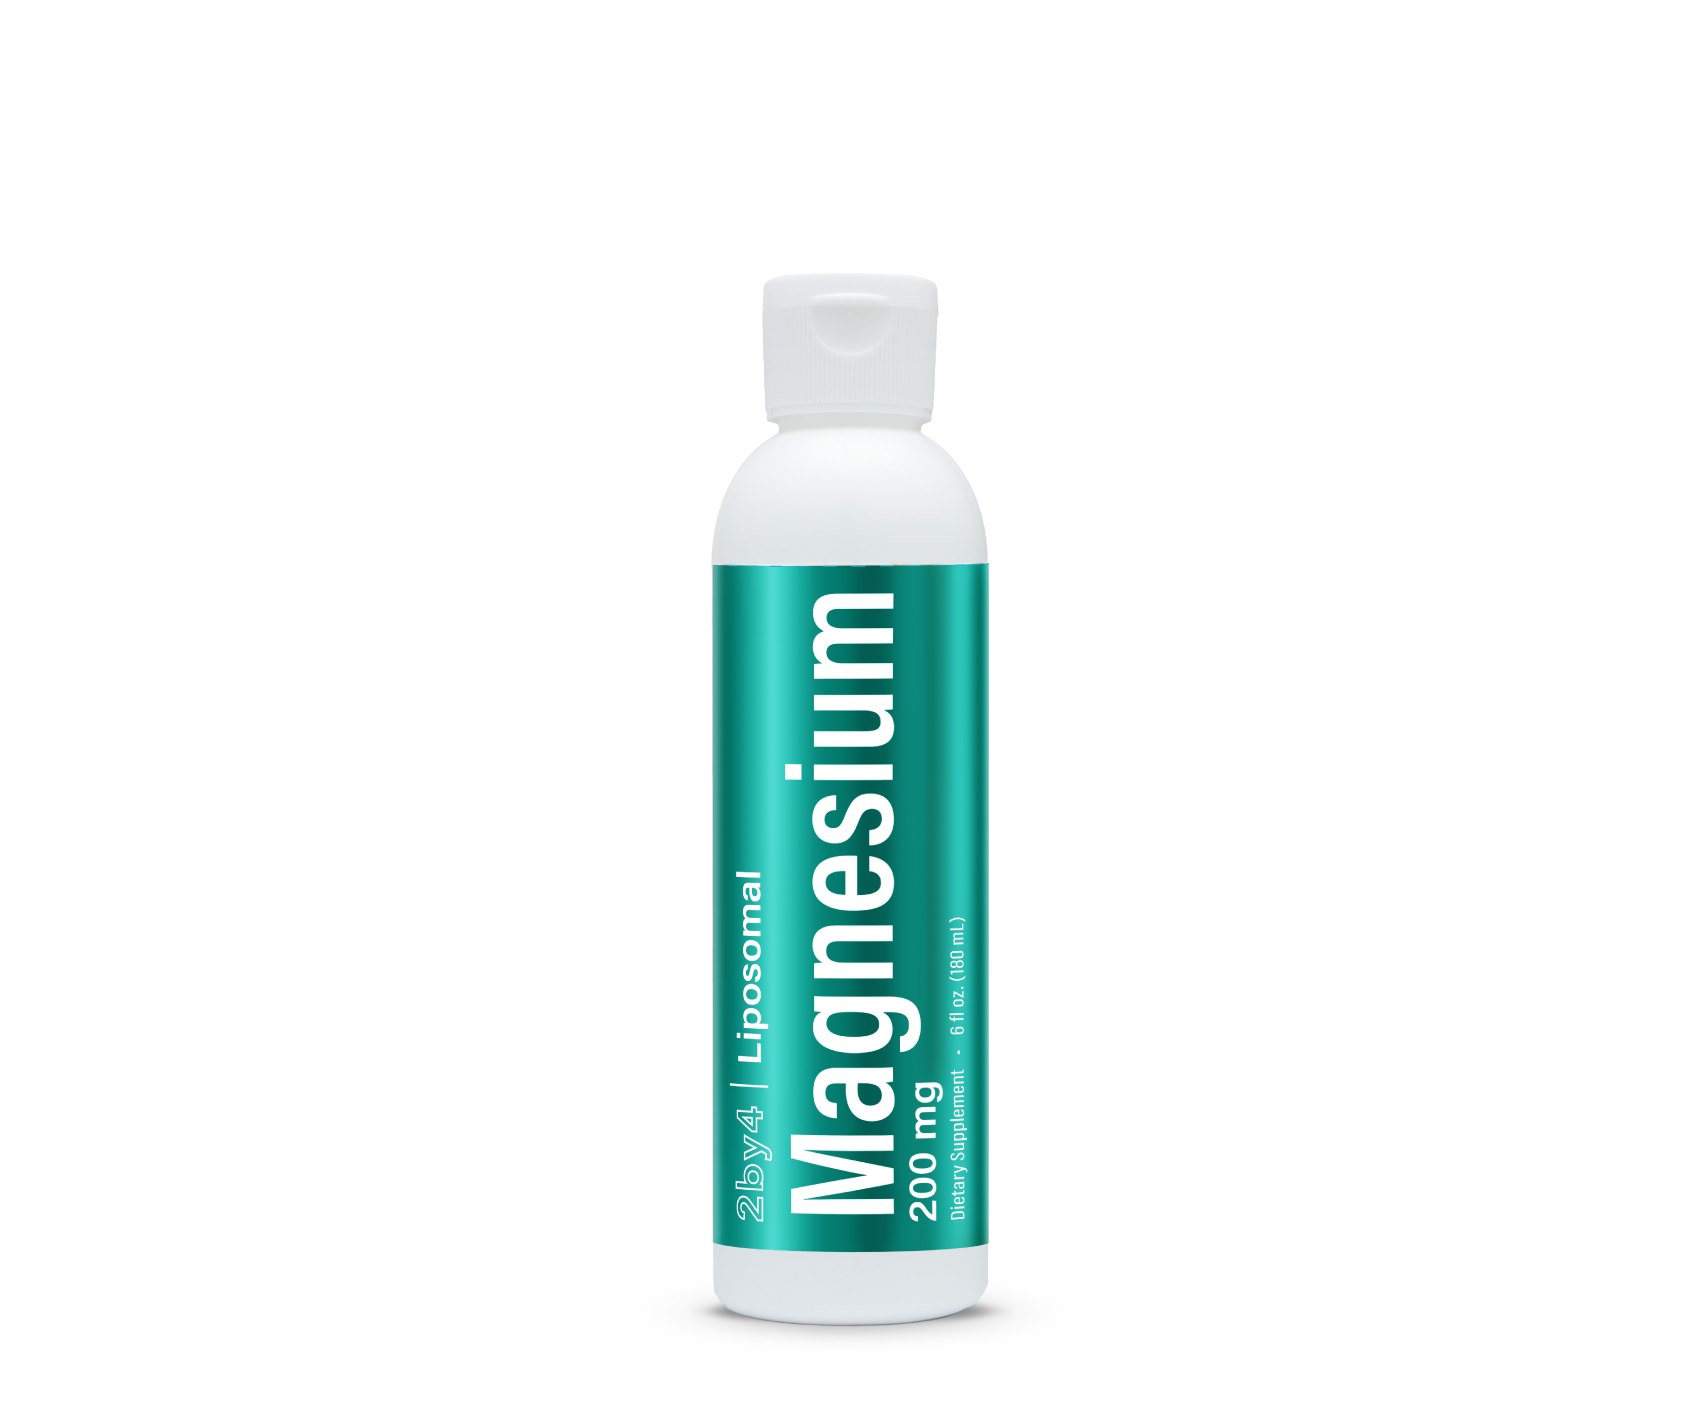 2by4 Liposomal Magnesium - with Nutristack Technology